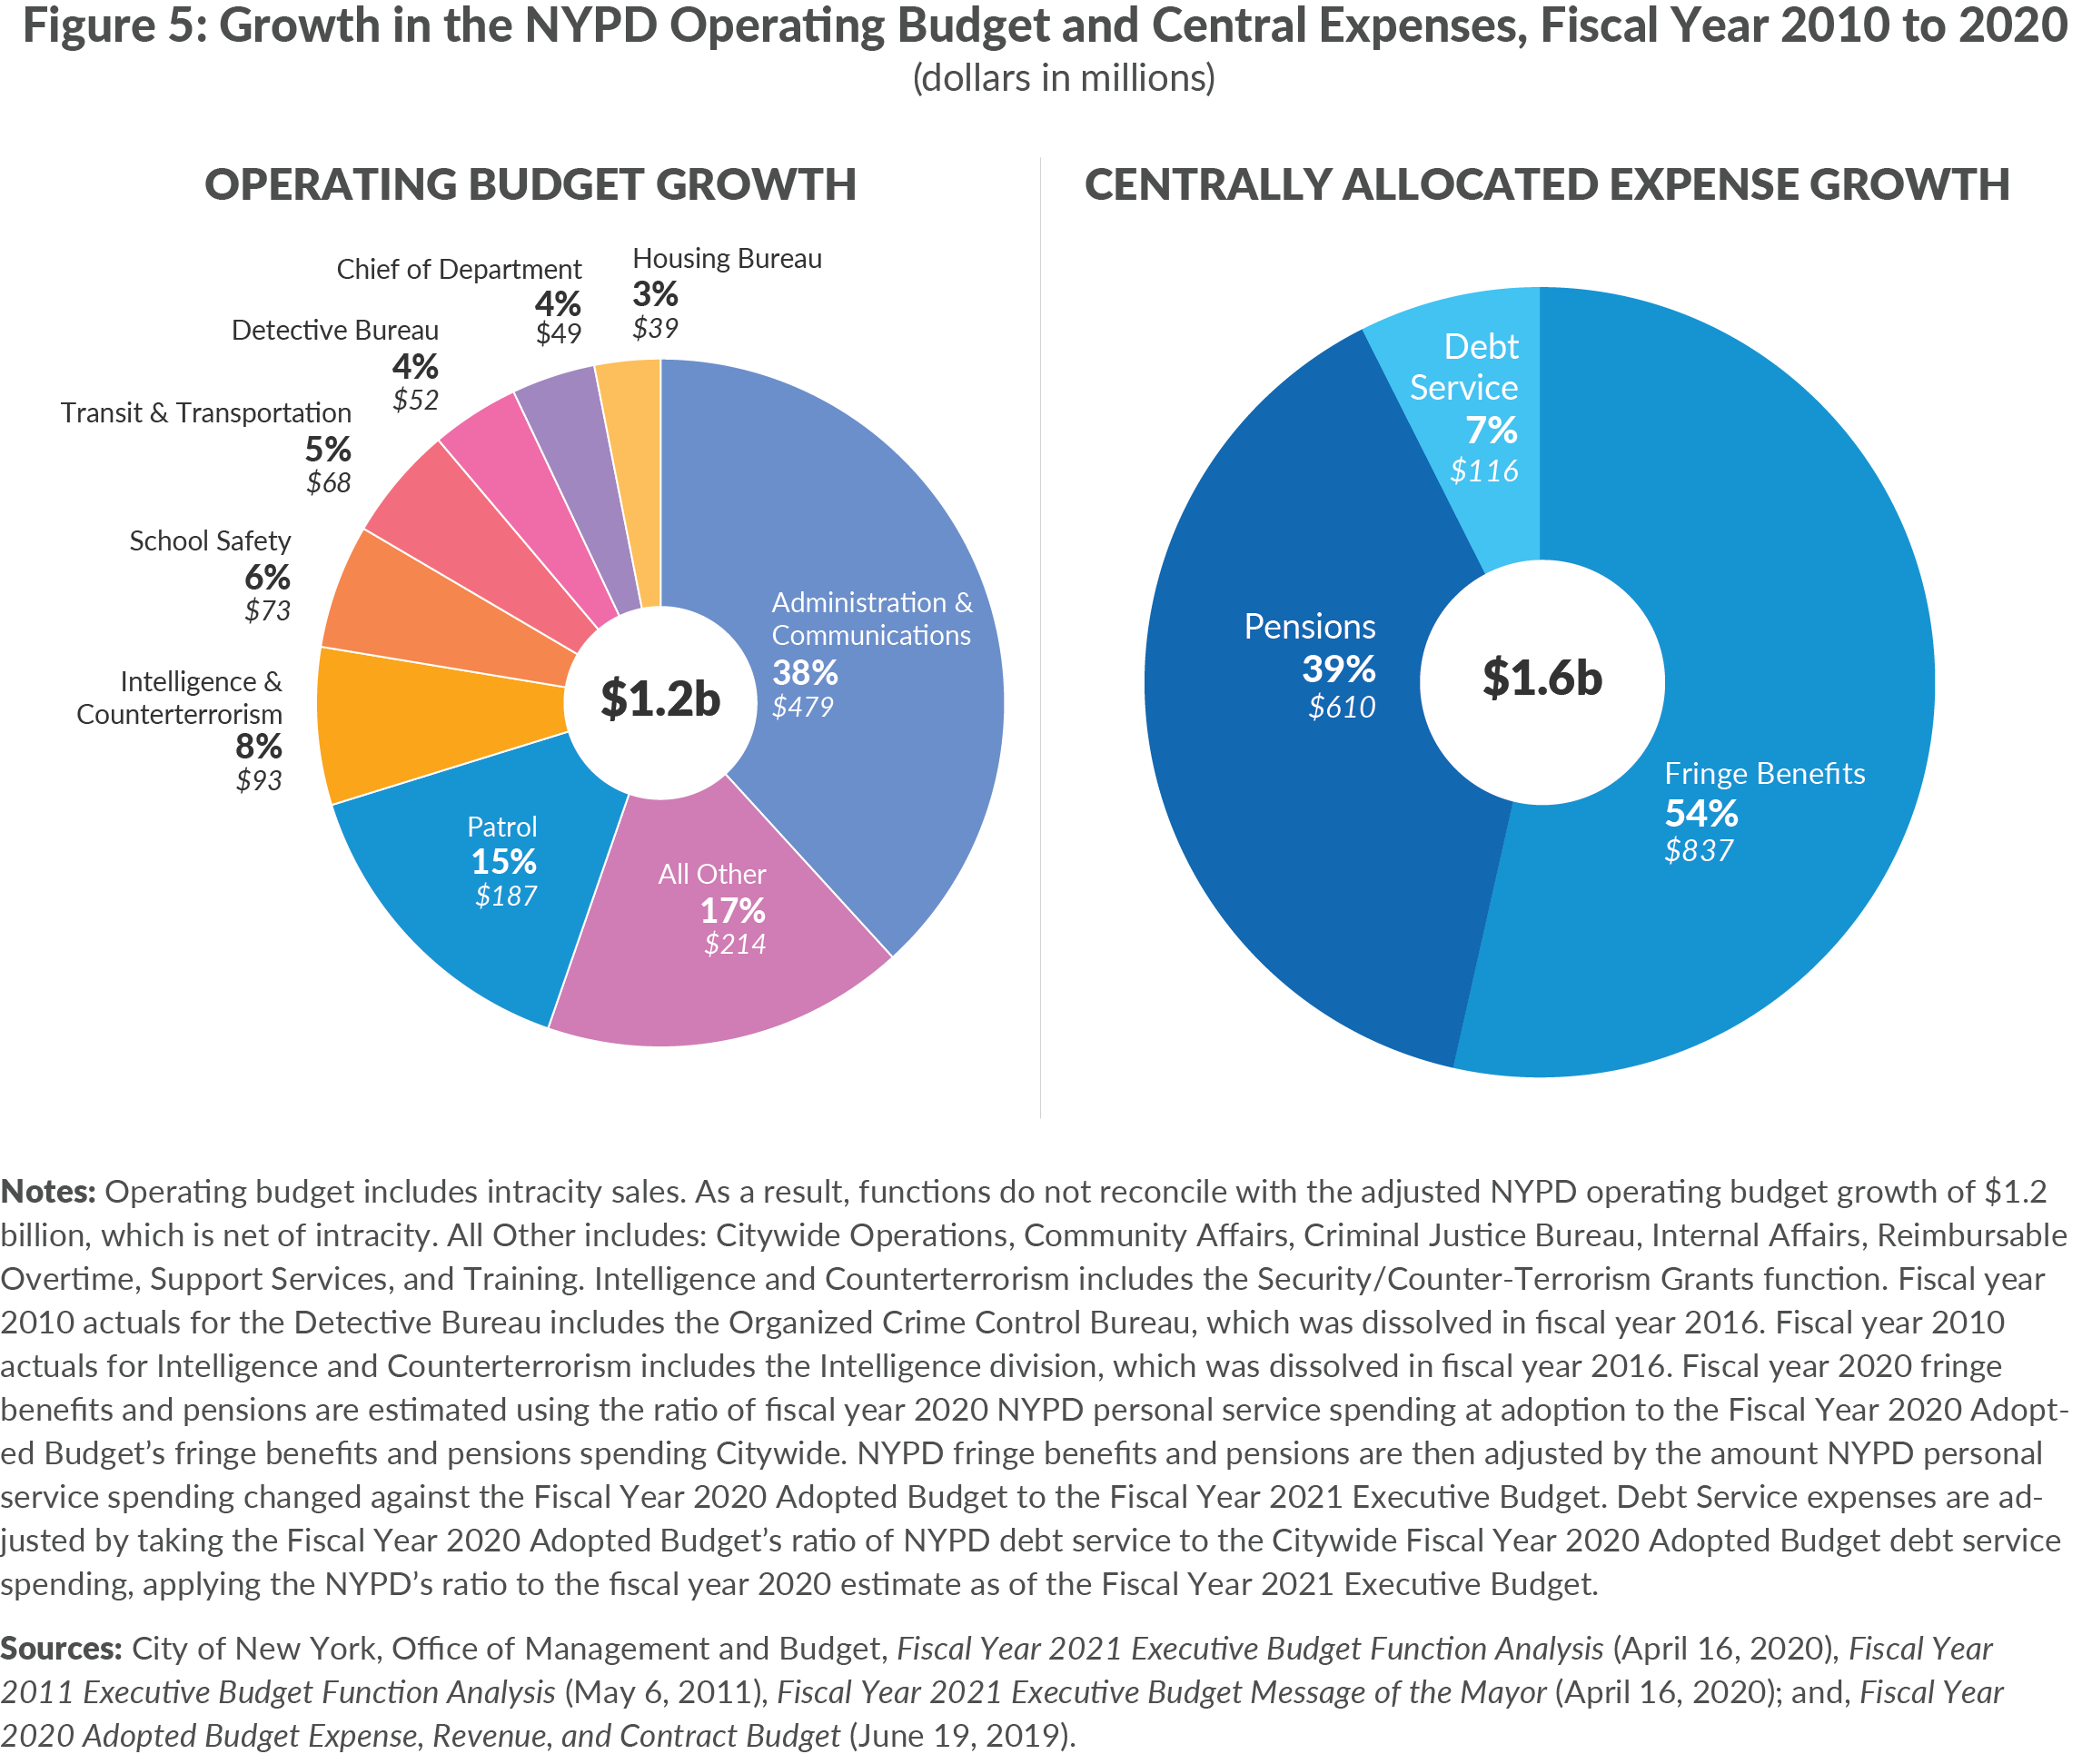 Figure 5. Growth in the NYPD Operating Budget and Central Expenses, Fiscal Year 2010 to 2020, dollars in millions